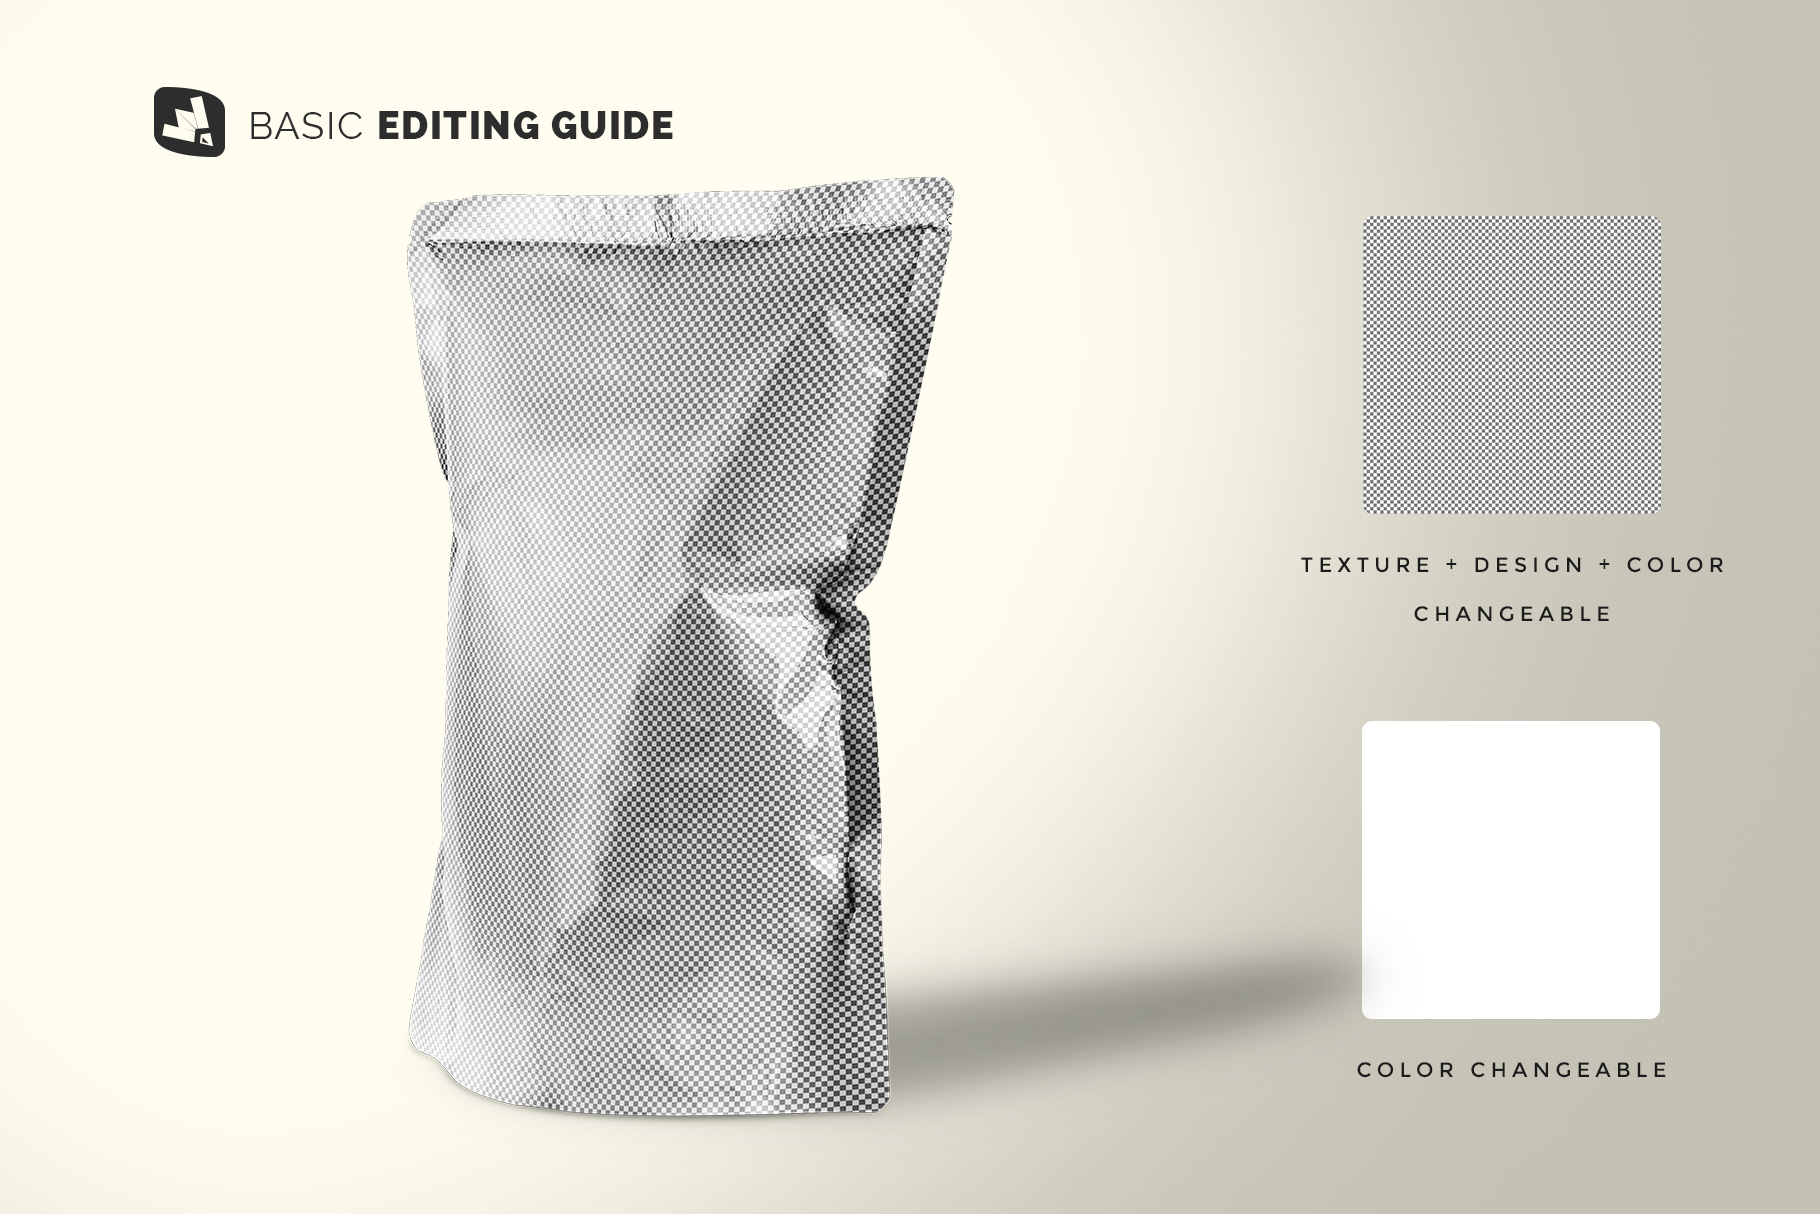 editability of the doypack snacks packaging mockup